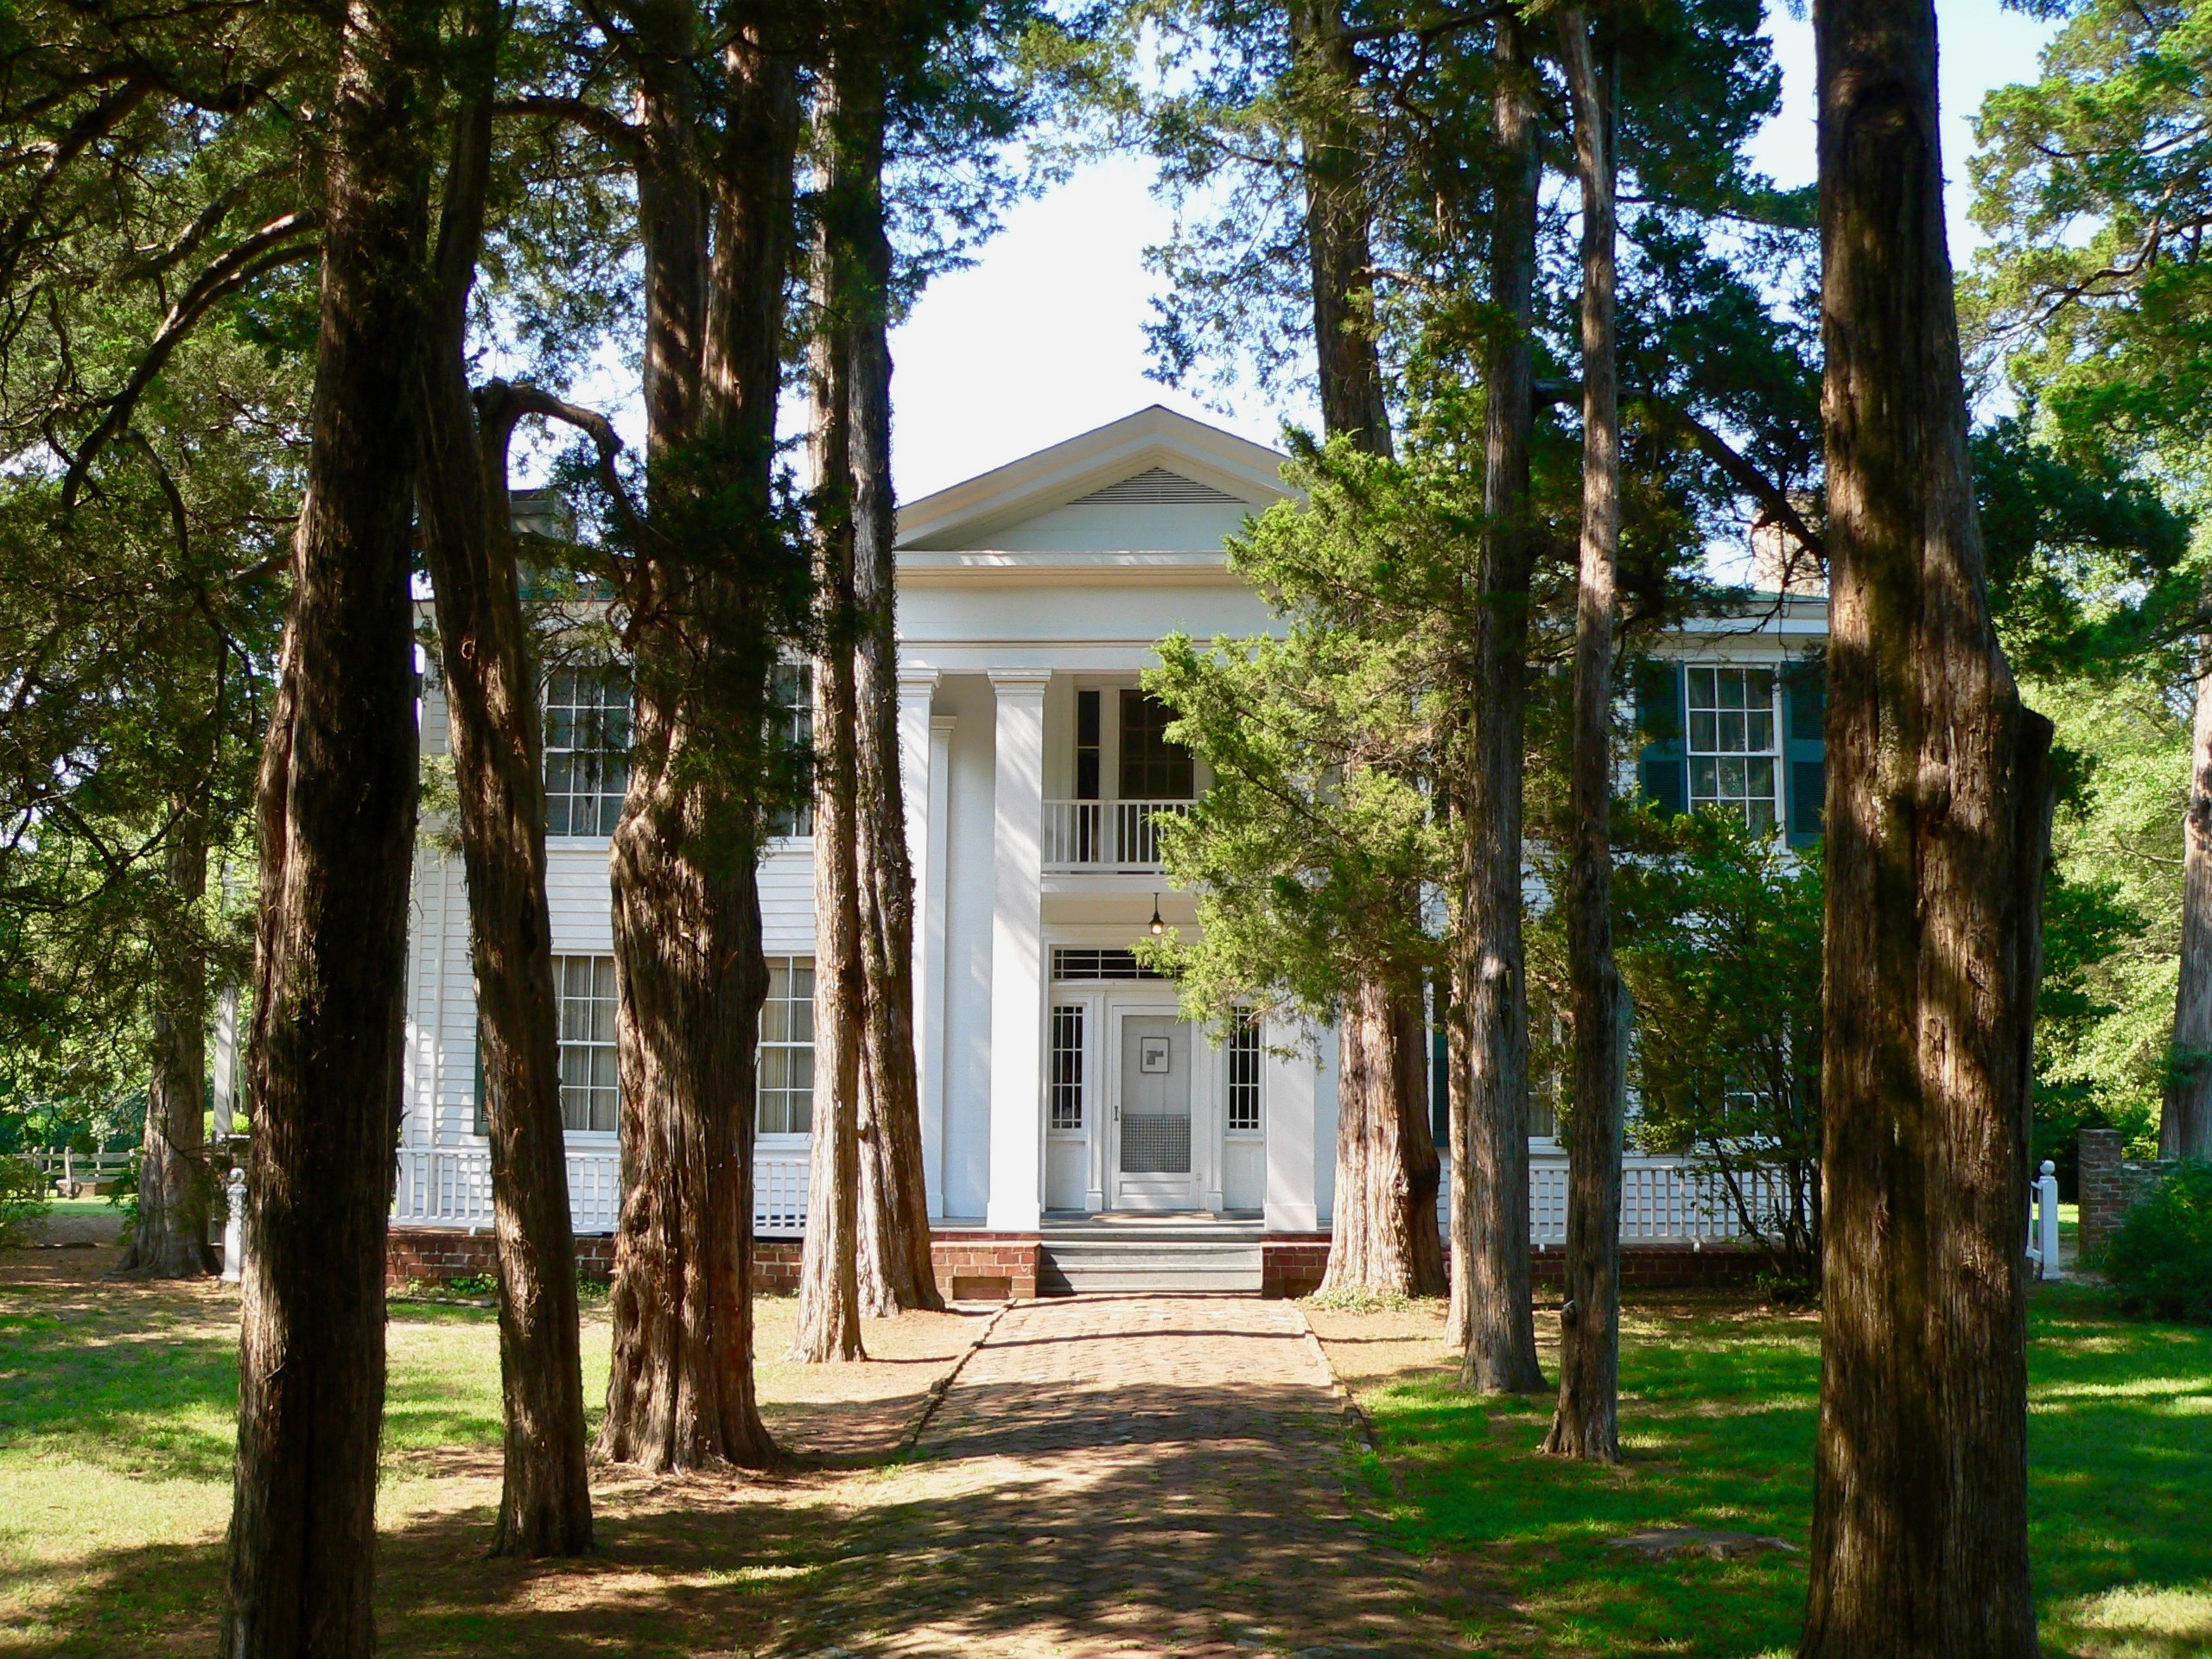 William Faulkner's home, Rowan Oak, in Oxford, Mississippi.